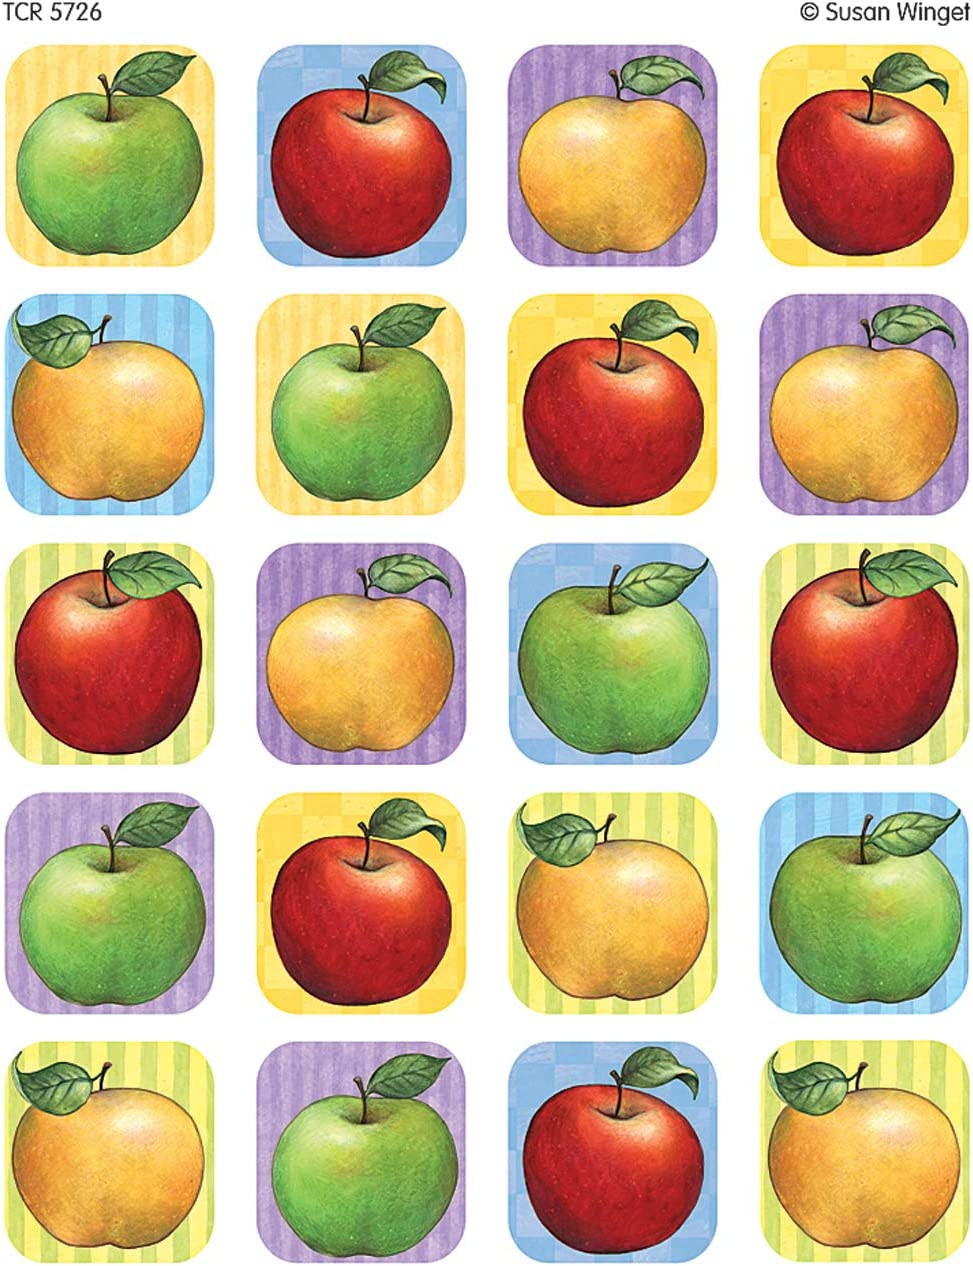 Teacher Created Resources Apple Stickers from Susan Winget, Multi Color (5726)